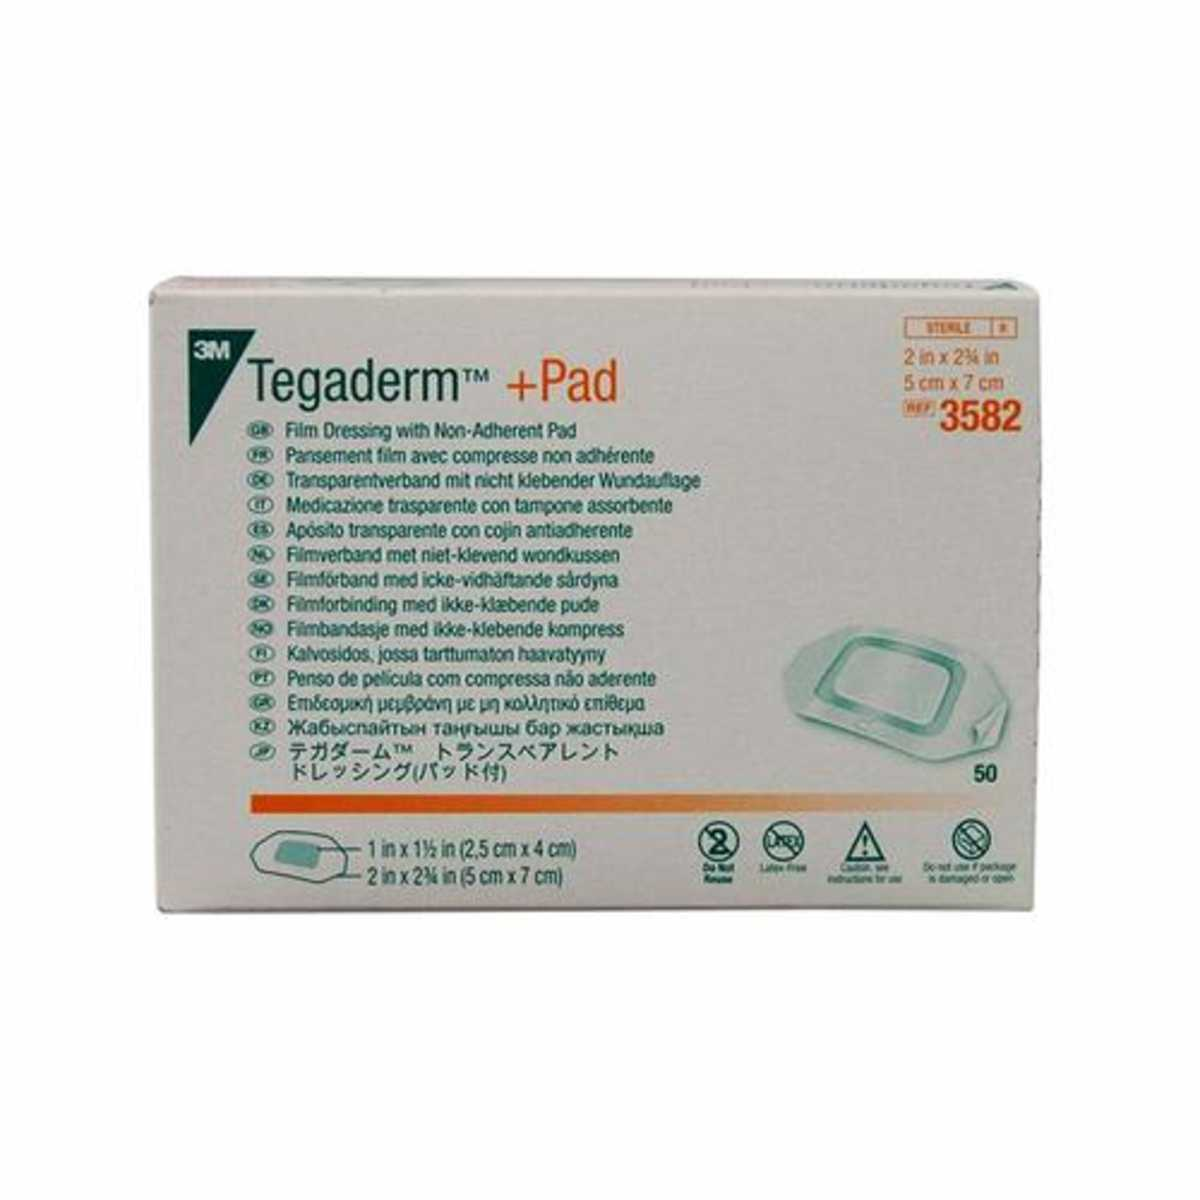 3m Tegaderm + Pad Transparent Dressing With Absorbent Pad